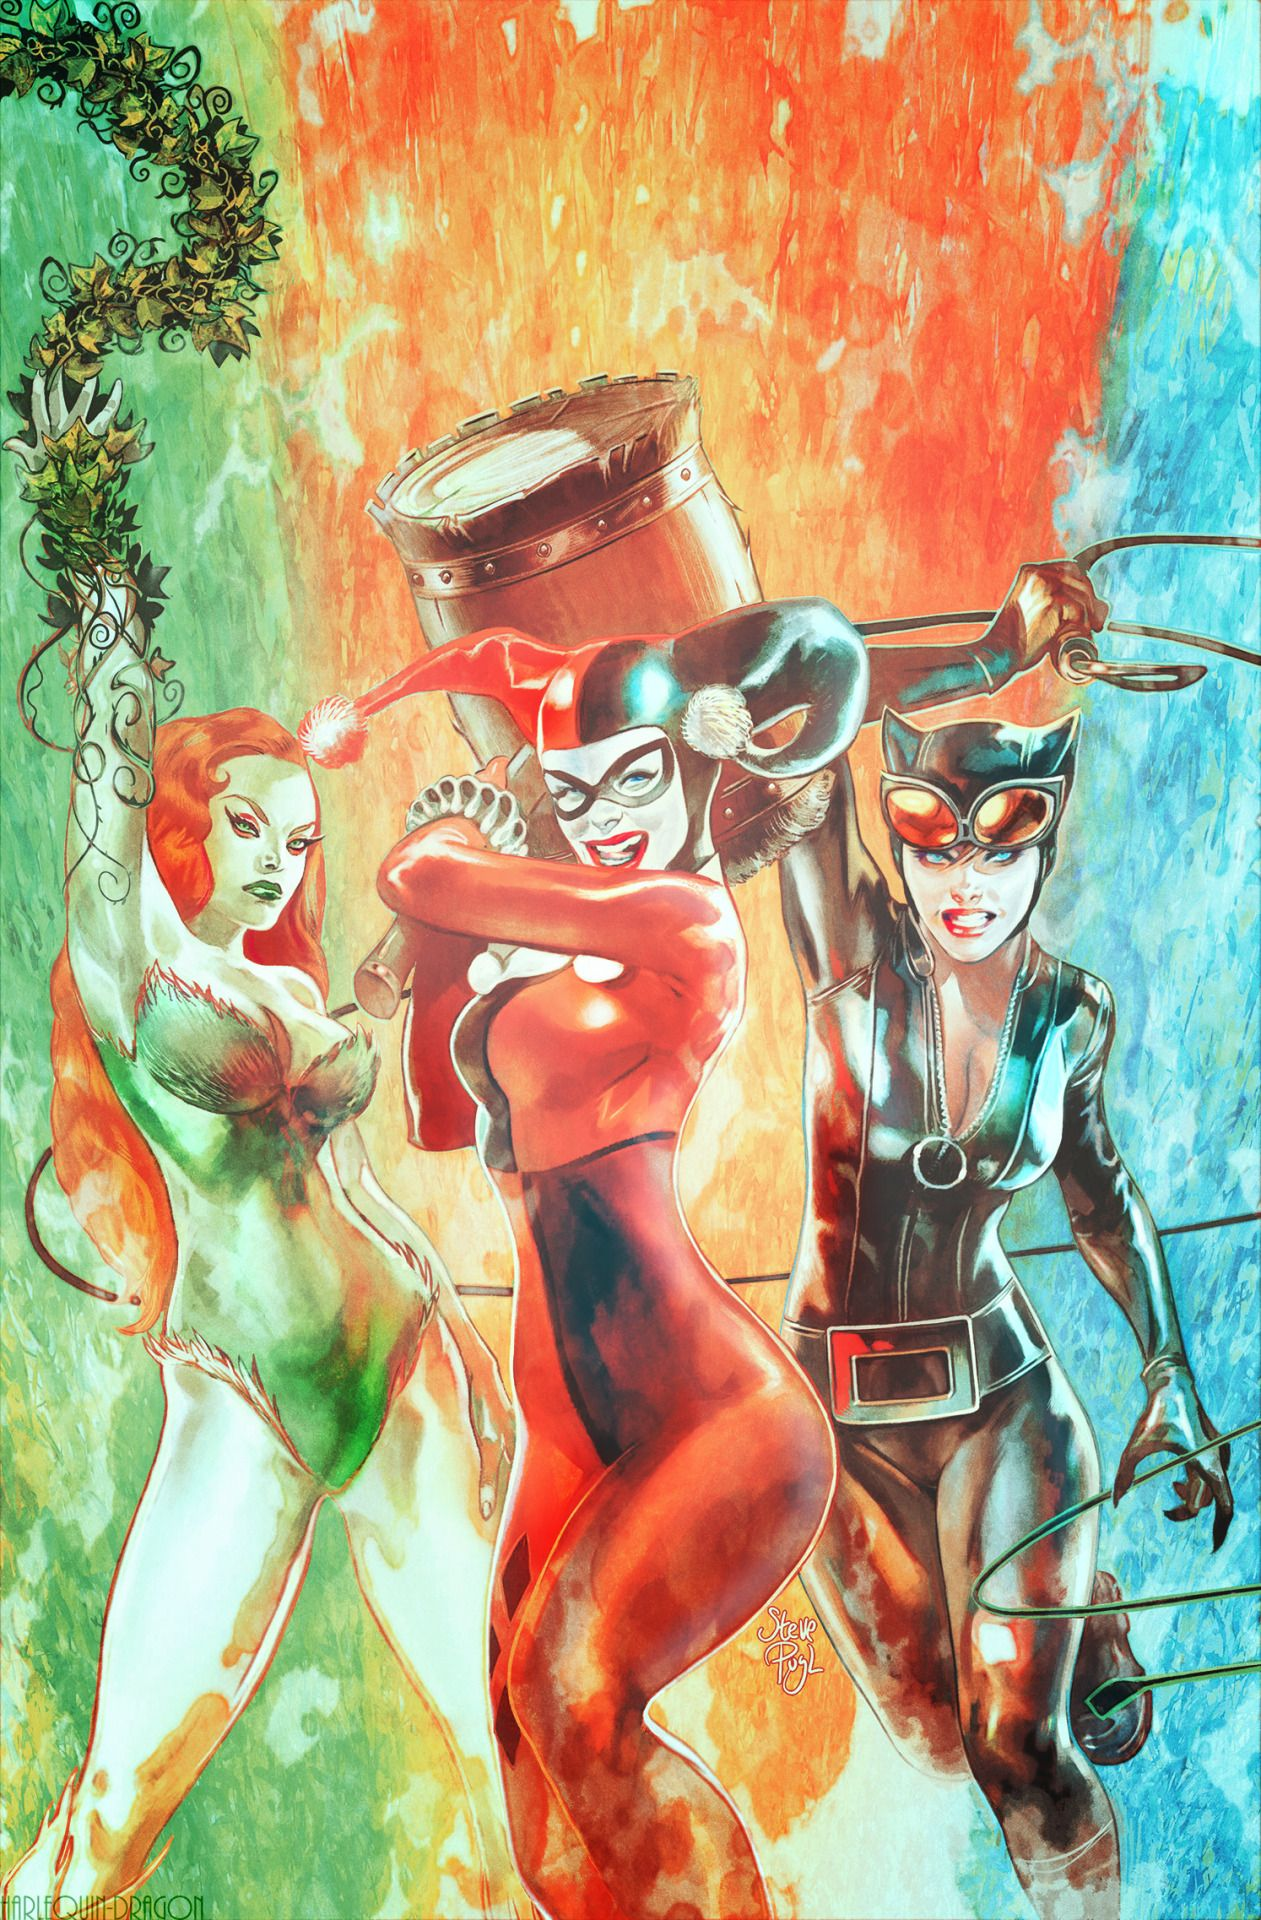 Ivy, Harley, & Catwoman in Convergence: Harley Quinn # 1 - Cover Art by Steve Pugh